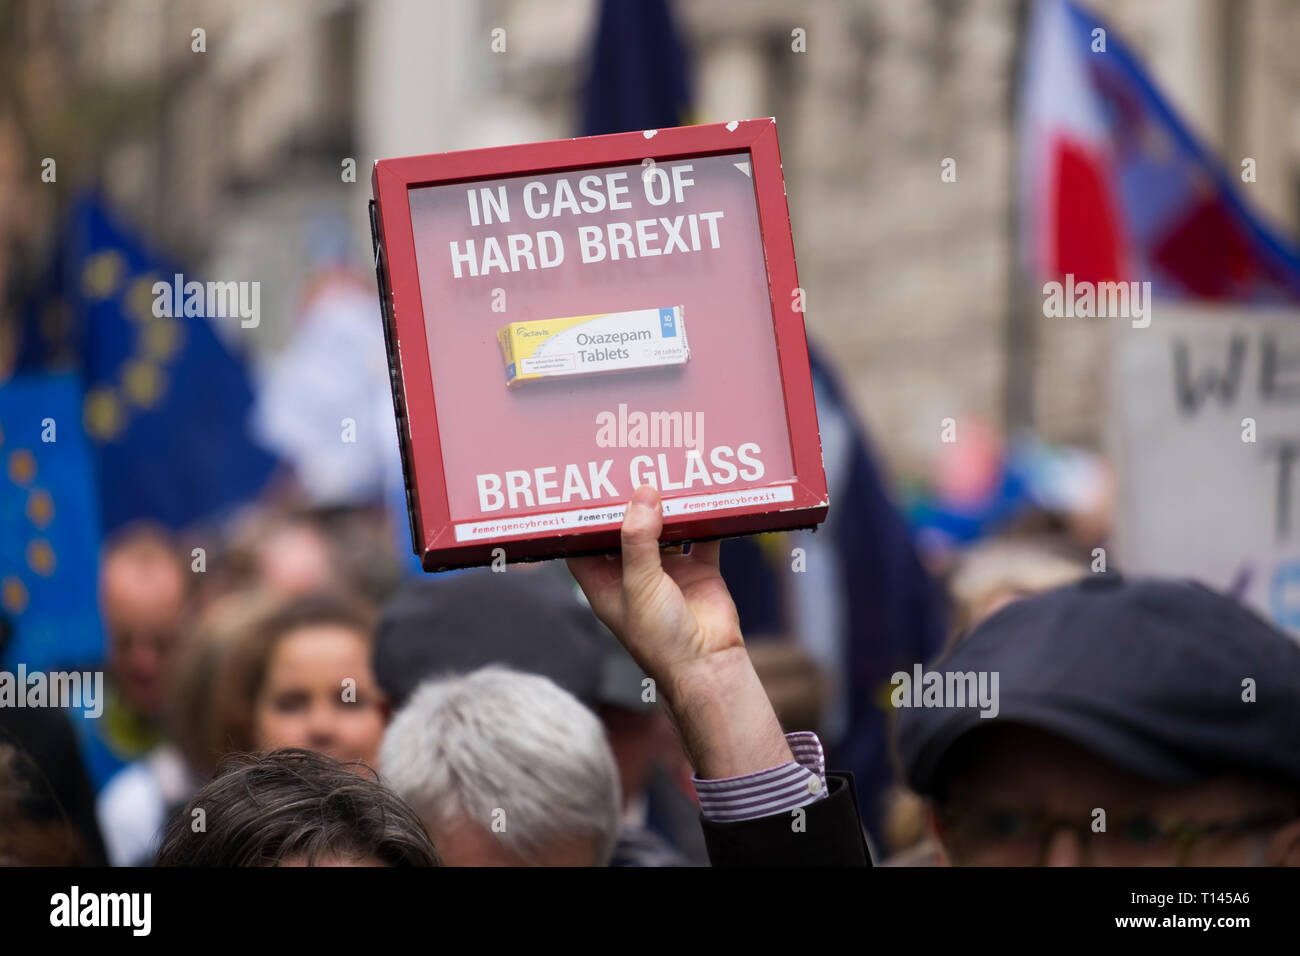 London, UK. 23 March, 2019. 'Put It To The People March', organised by the People's Vote Campaign and run by British pro-European campaign group Open Britain, takes place in central London, starting at Park Lane via Piccadilly to Parliament Square and attracting demonstrators from across the country who want a new Brexit referendum. Credit: Malcolm Park/Alamy Live News. Stock Photo